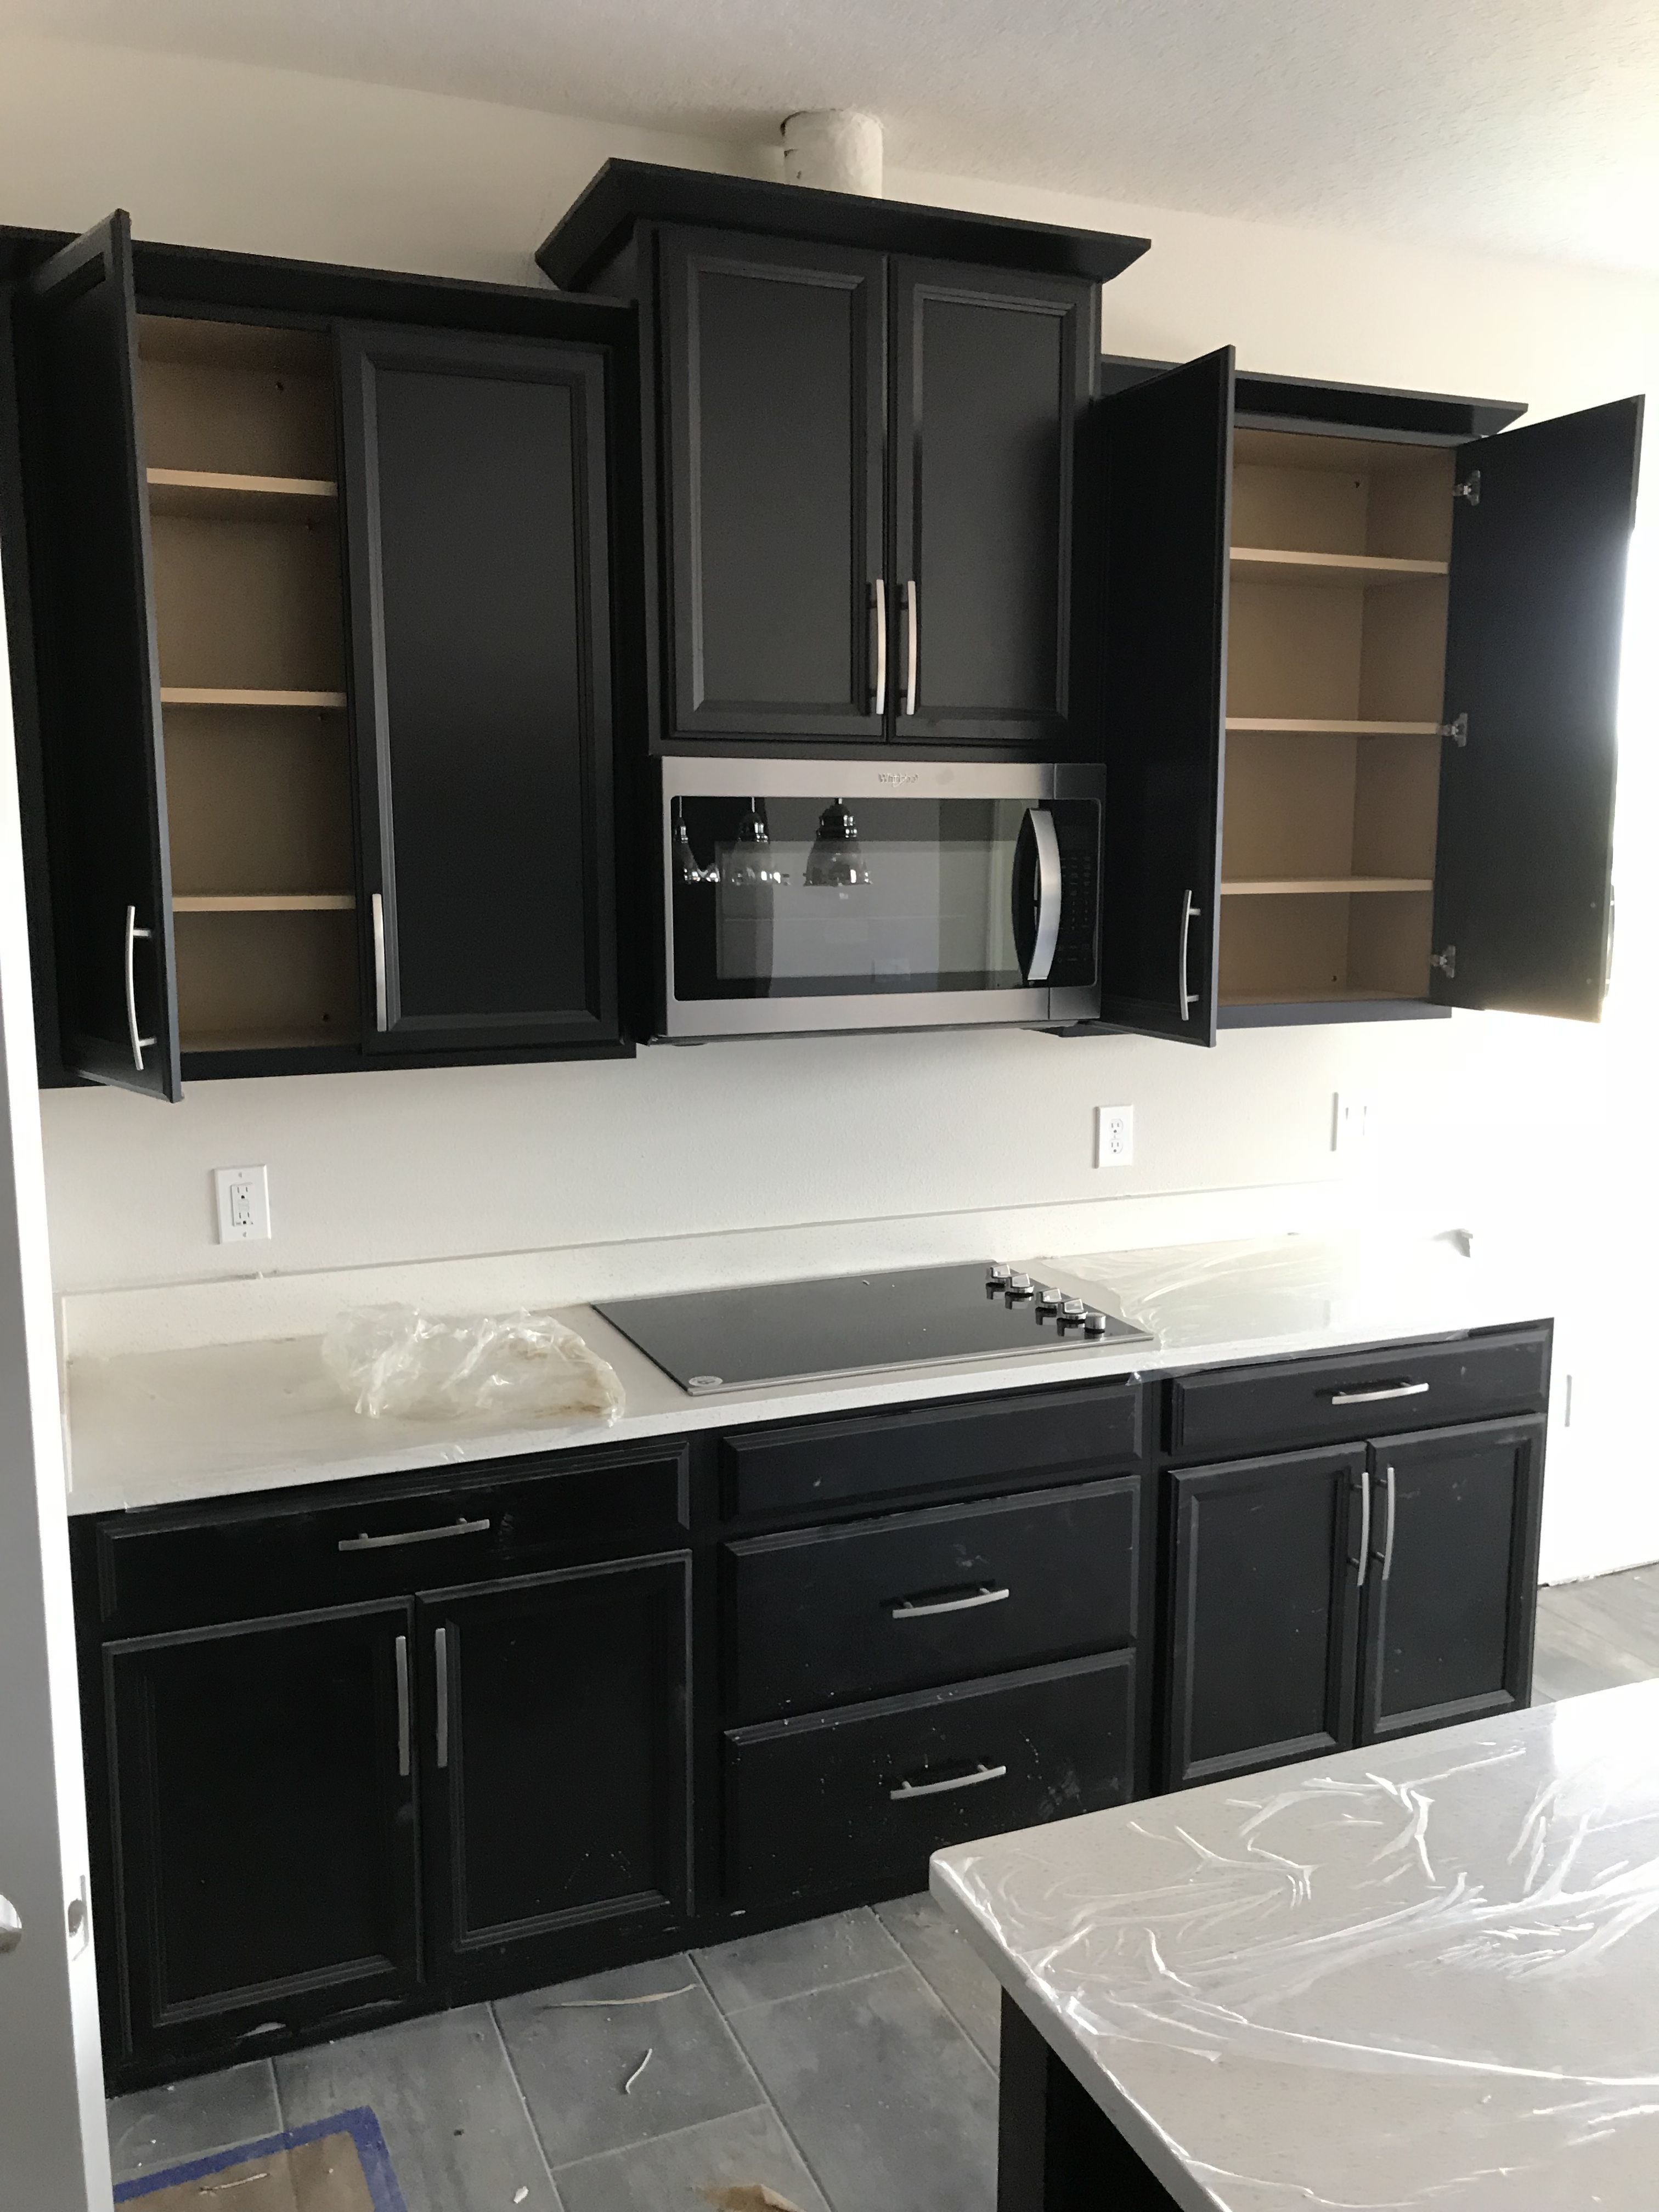 Timberlake Tahoe Espresso Cabinets Microwave Bump Out Microwave Bump Up Espresso Cabinets New Kitchen Timberlake Cabinets